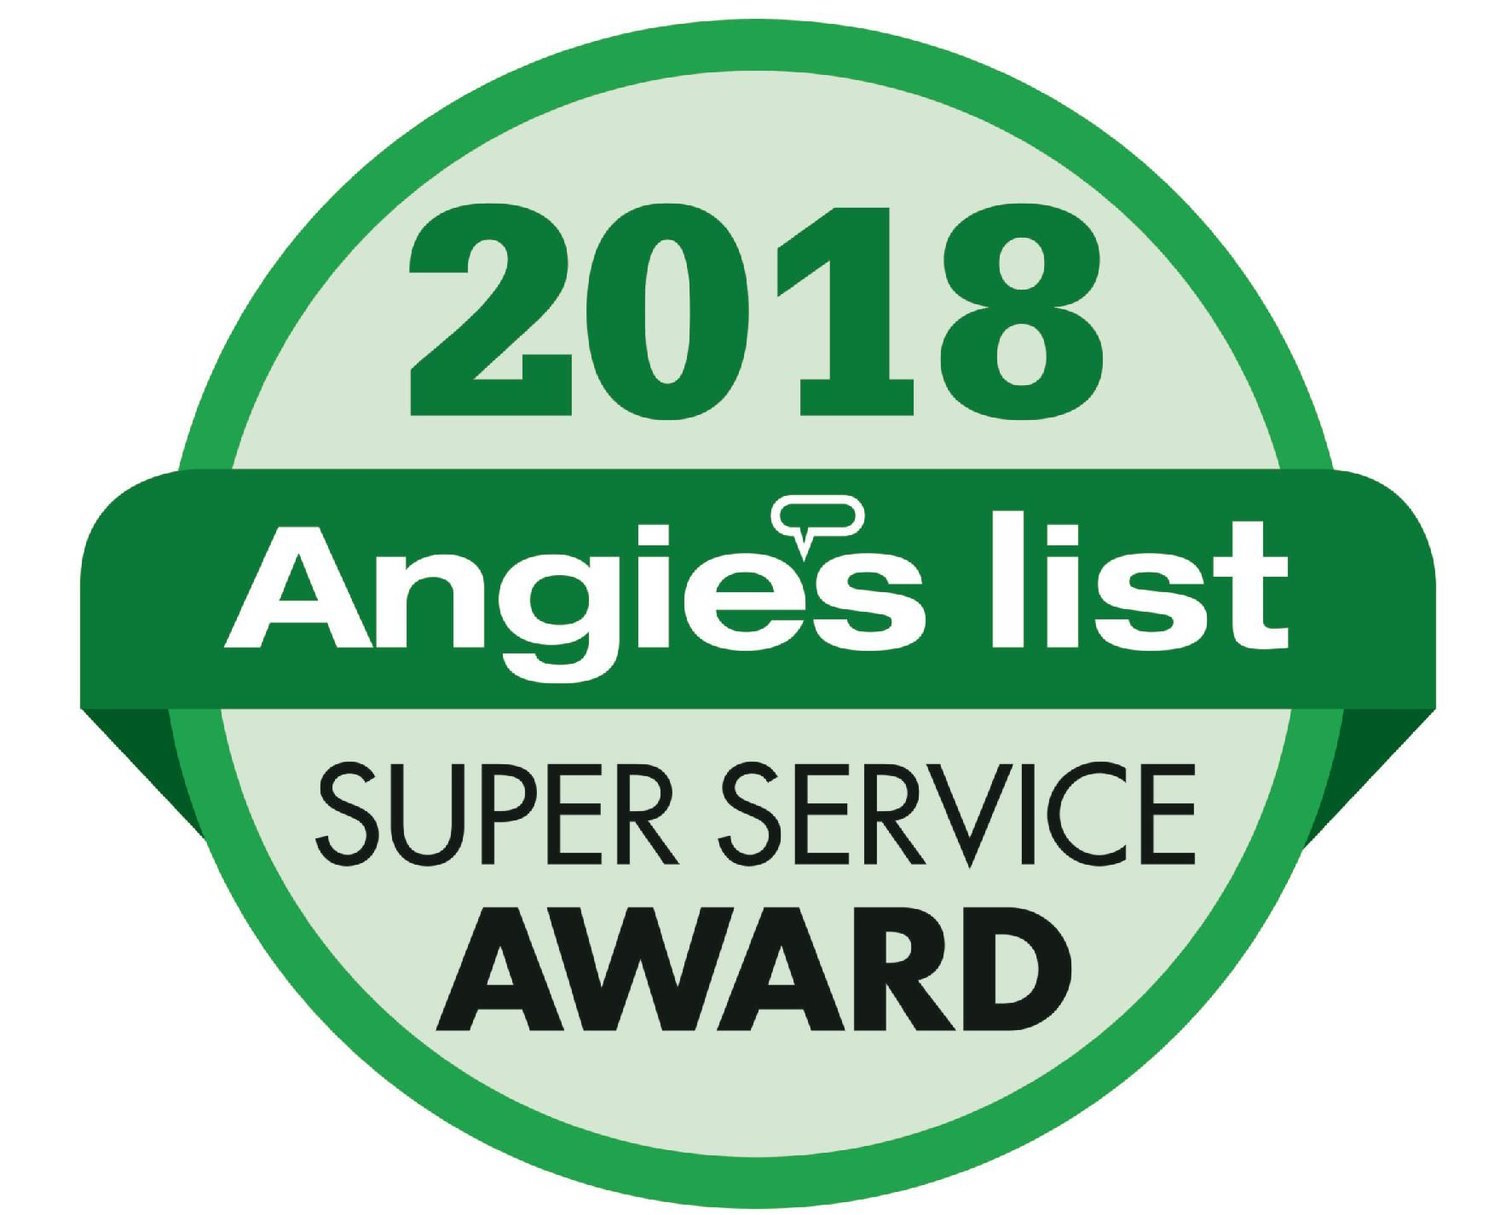 Angies Super Service Award List Logo